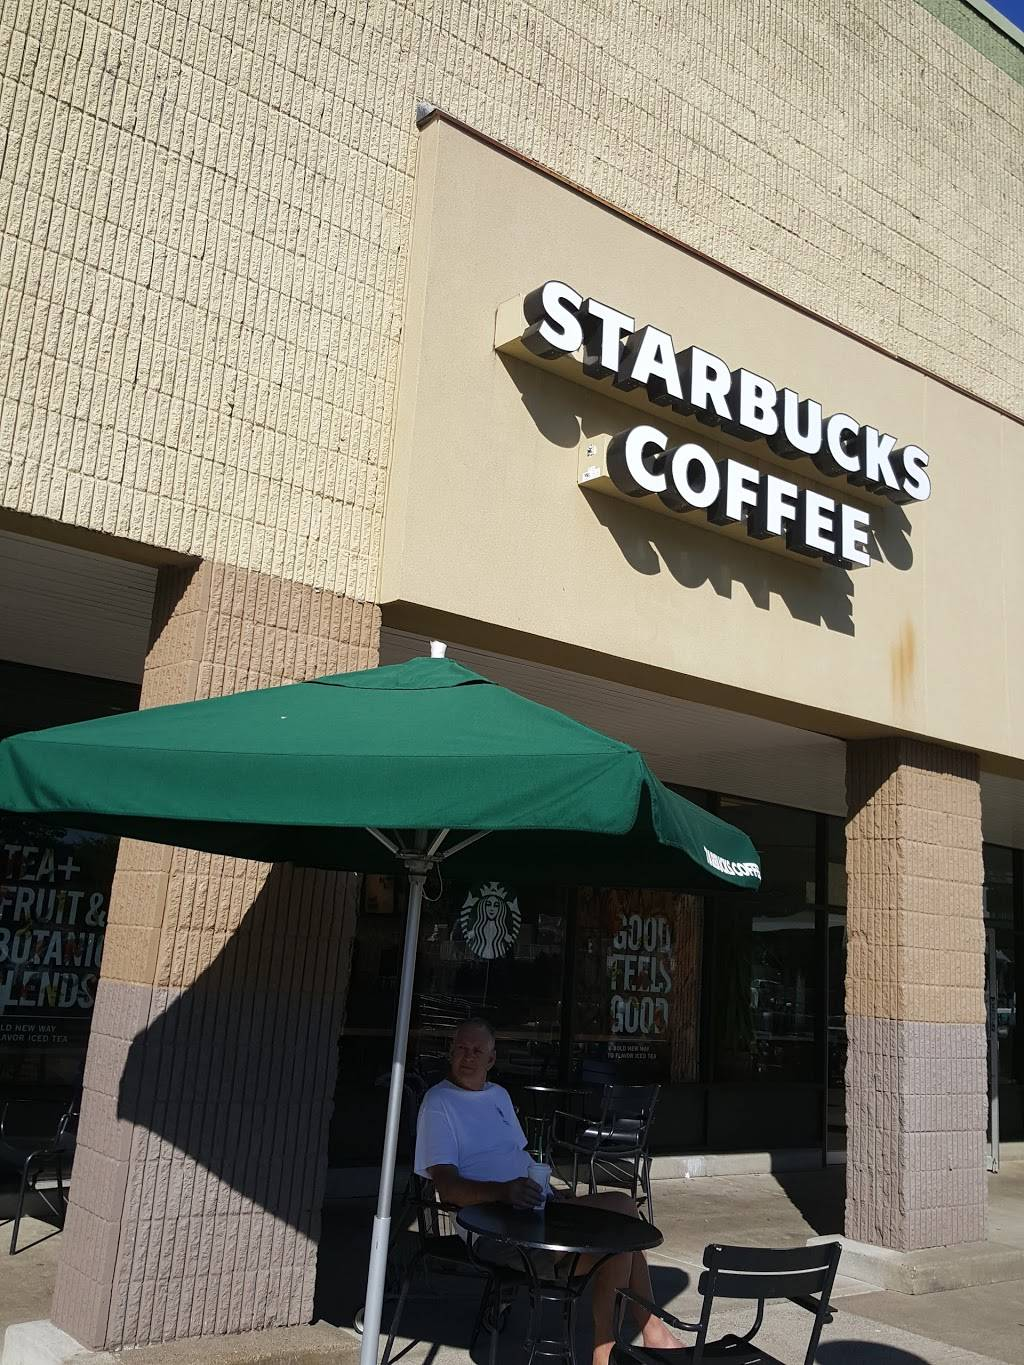 Starbucks | cafe | 1839 Molalla Ave suite c, Oregon City, OR 97045, USA | 5035571826 OR +1 503-557-1826